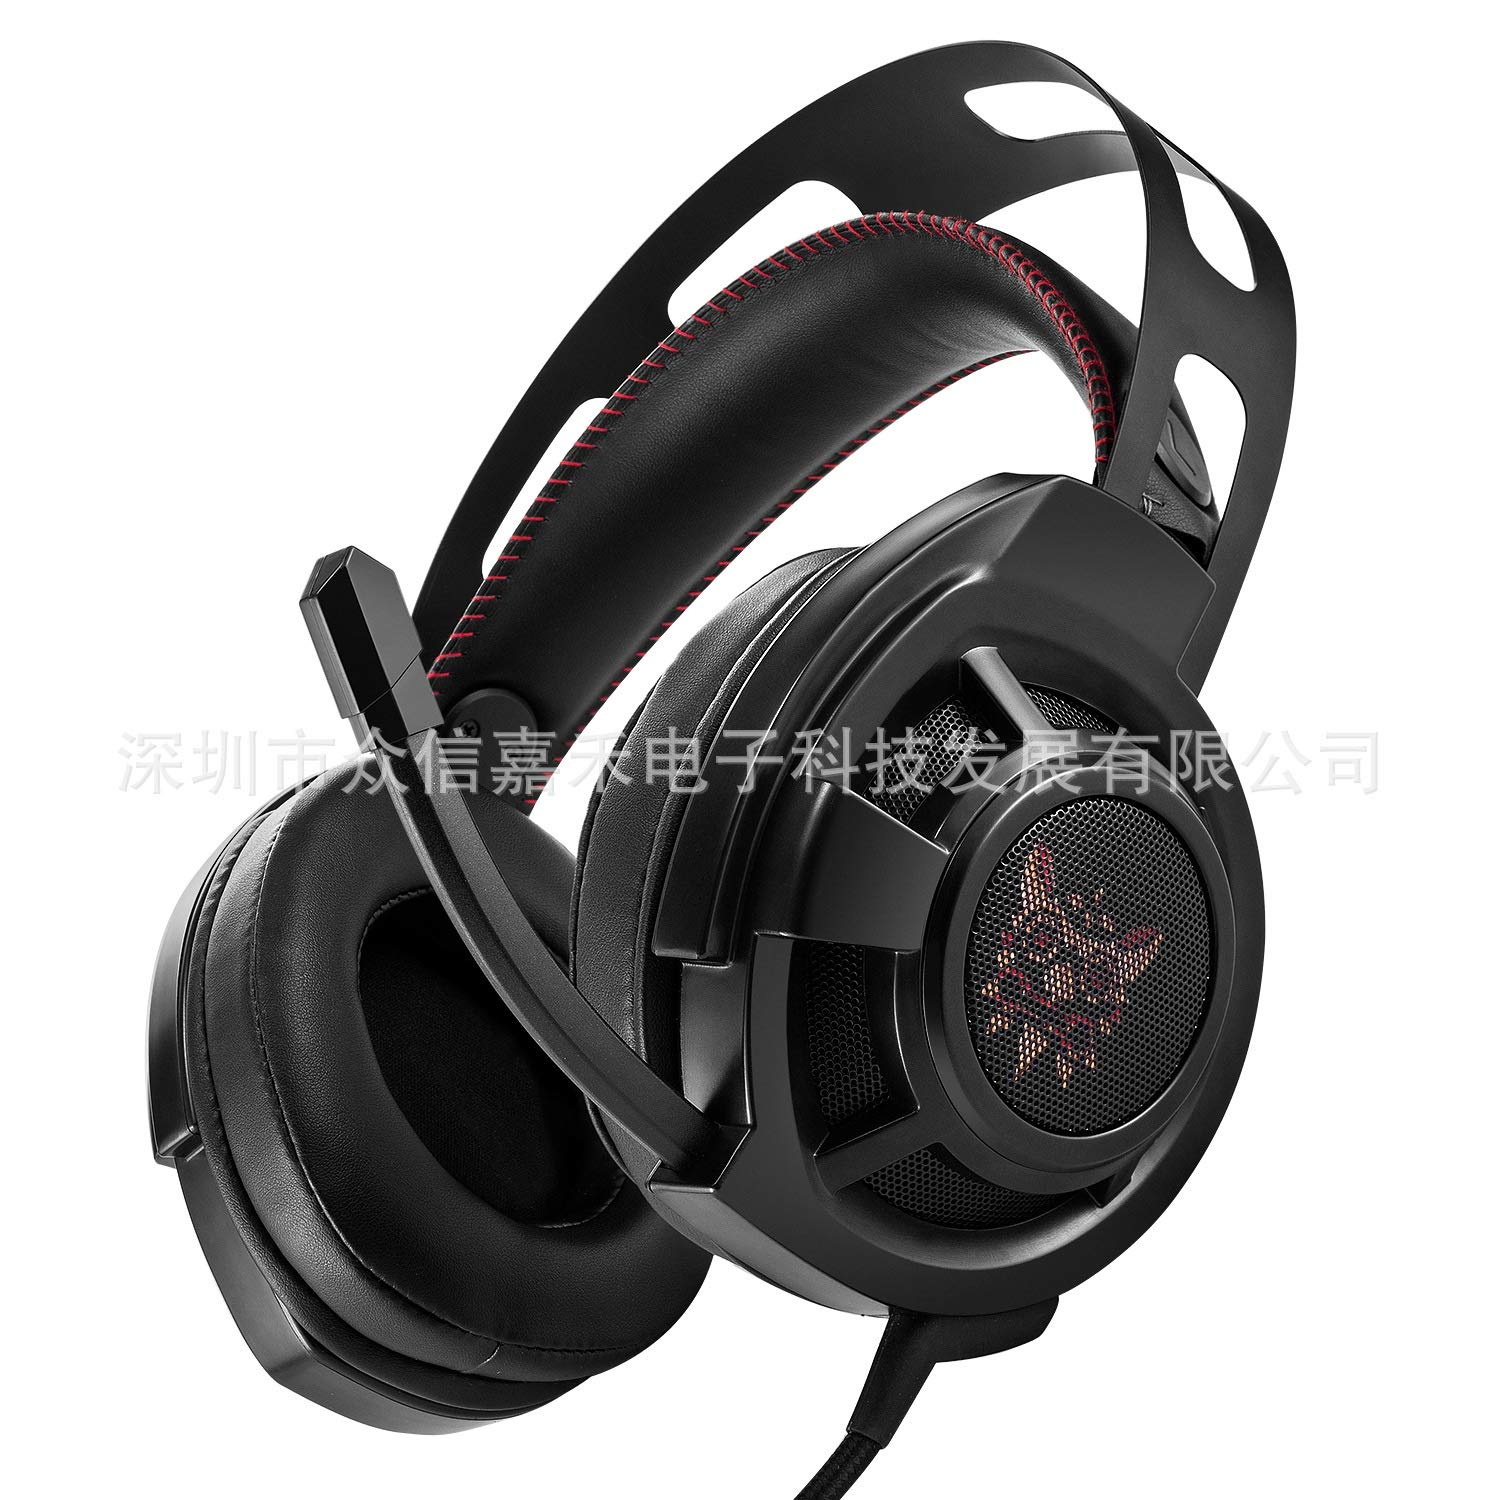 HUAN Gaming Headset,ONIKUMA M190 Computer Esports Gaming Headset Head-Mounted Anti-Noise Subwoofer Headphones for PS4, PC, Xbox One Controller